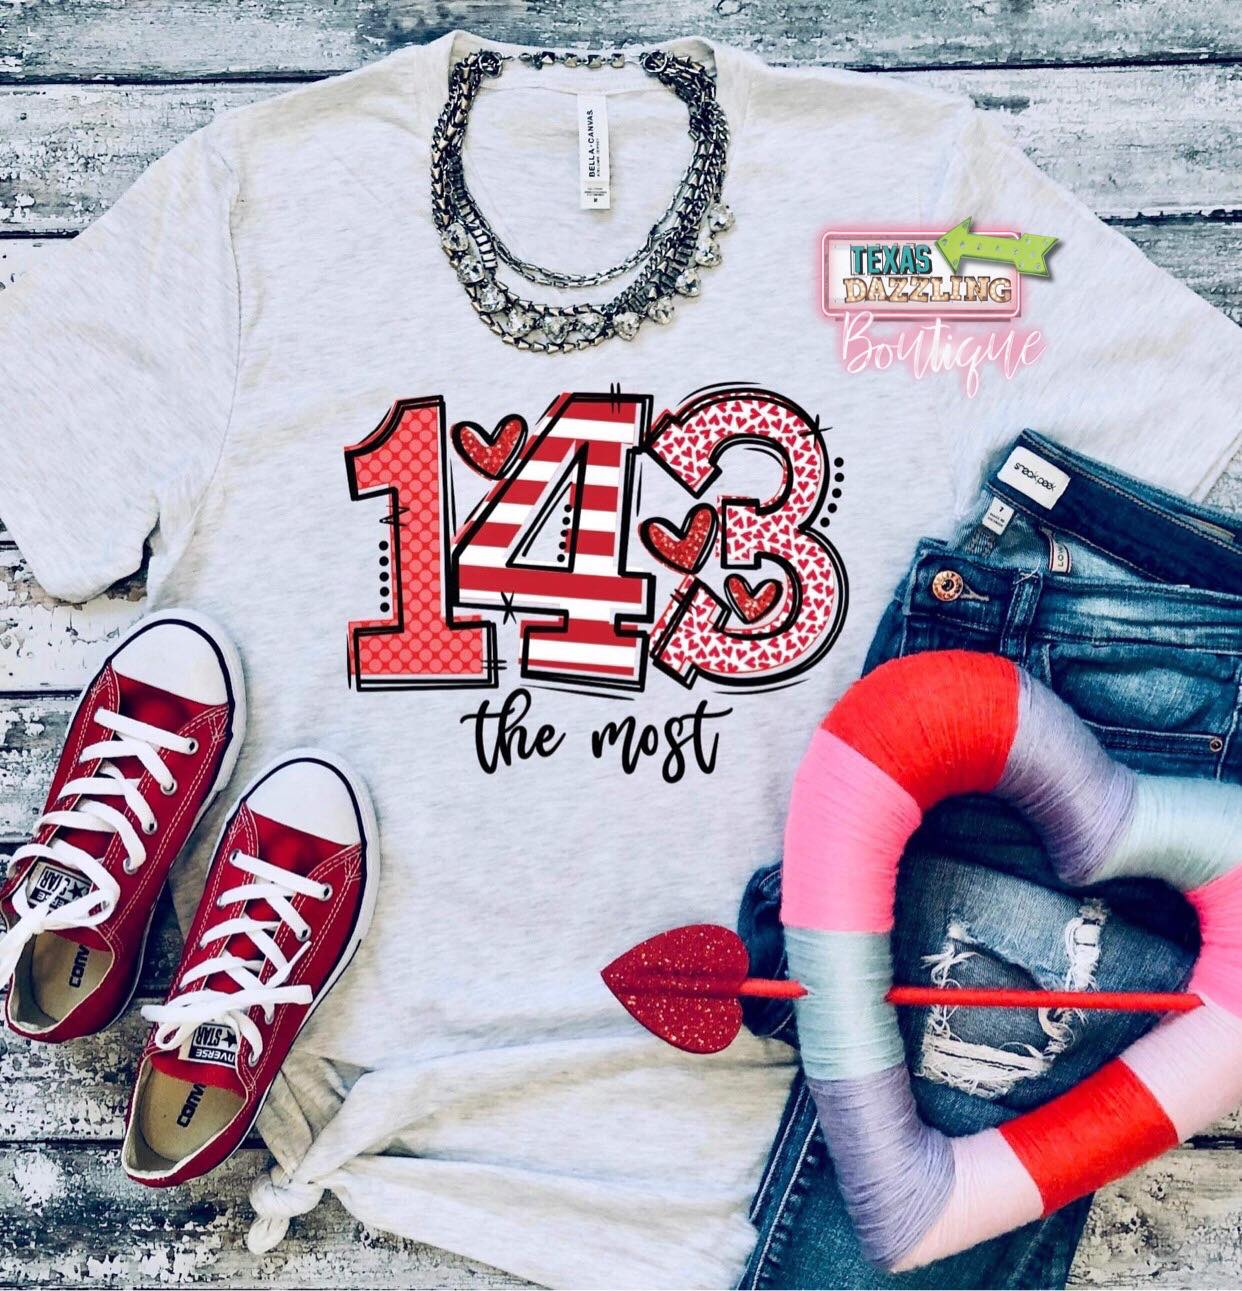 143 The Most Tee